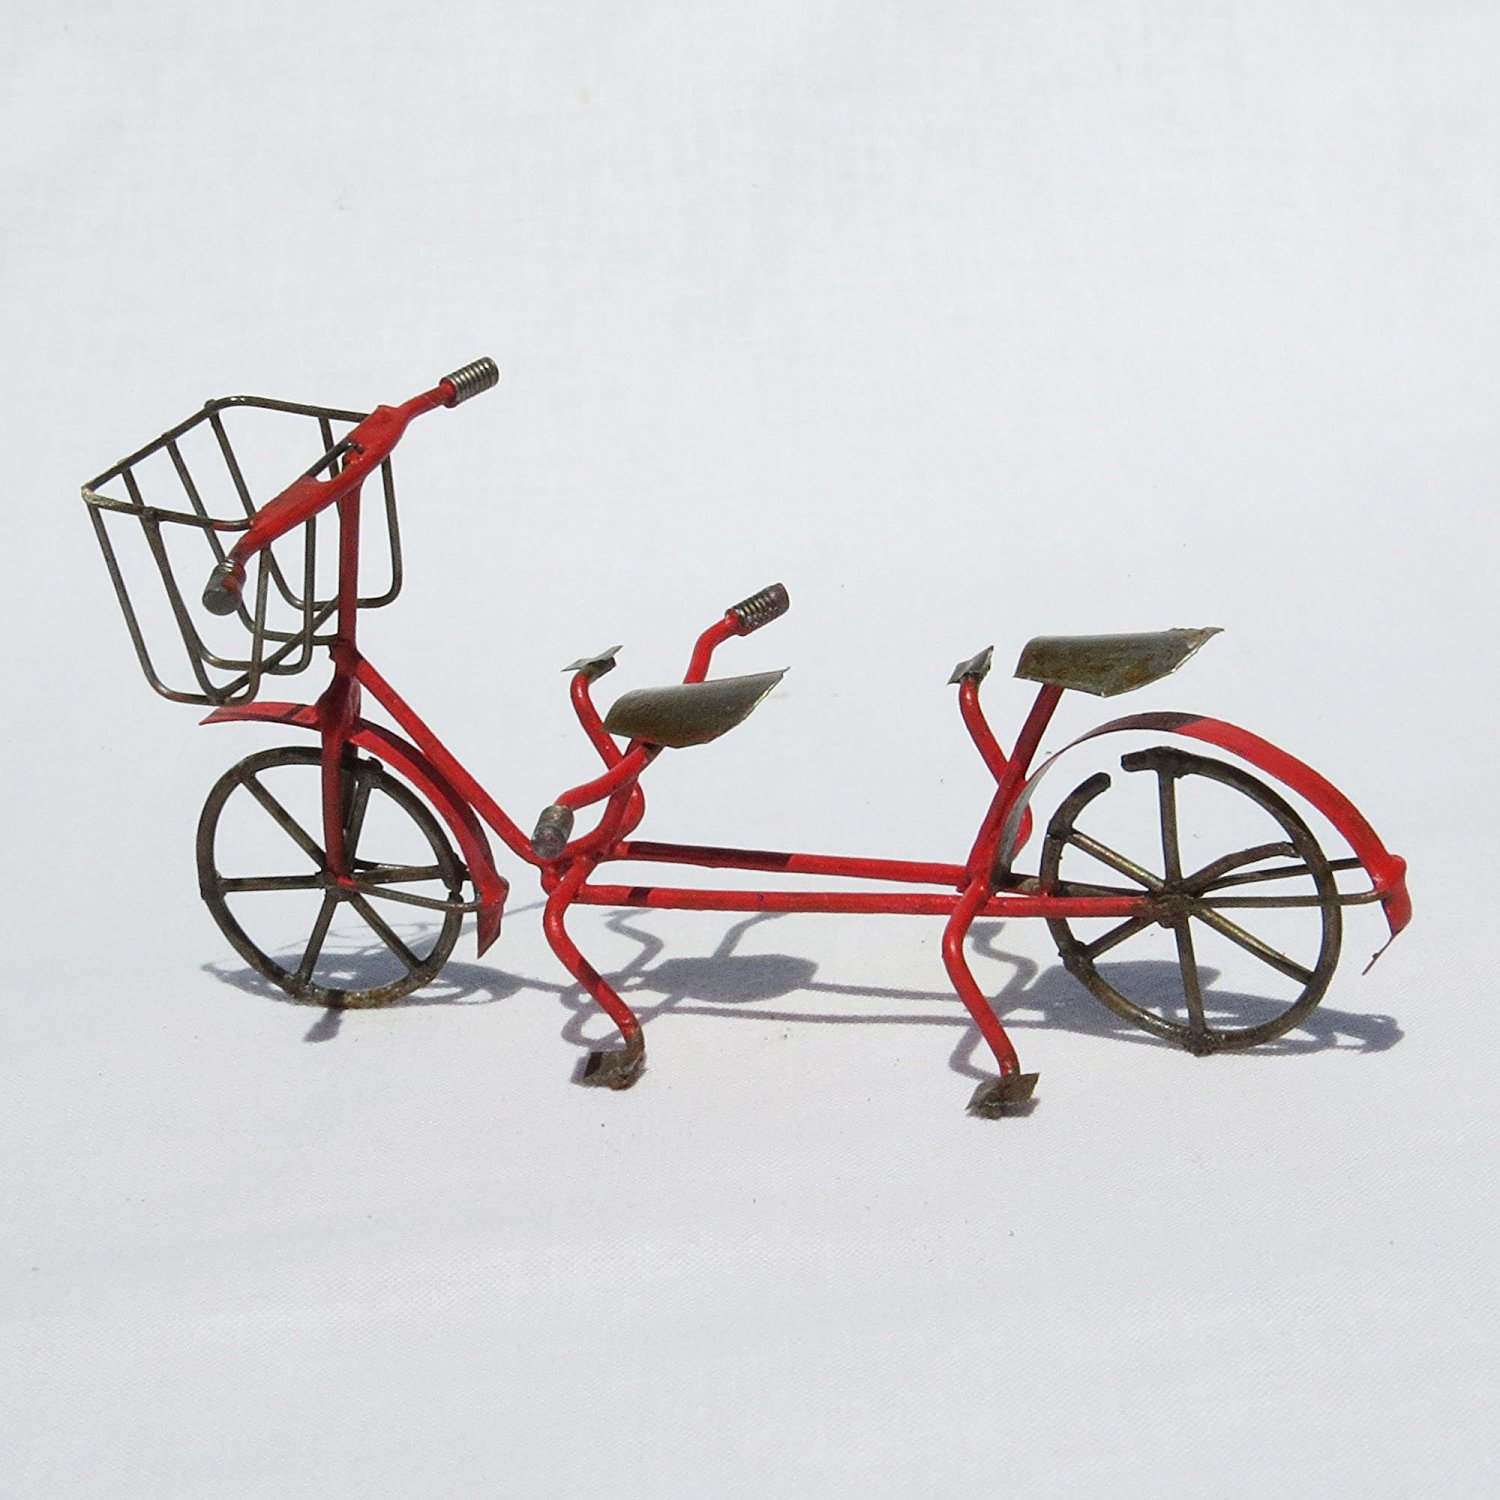 Miniature Fairy Garden Tandem Bicycle, Red, Size: 4.5 Wide x 2.5 High x 1.75 Deep By jeremie